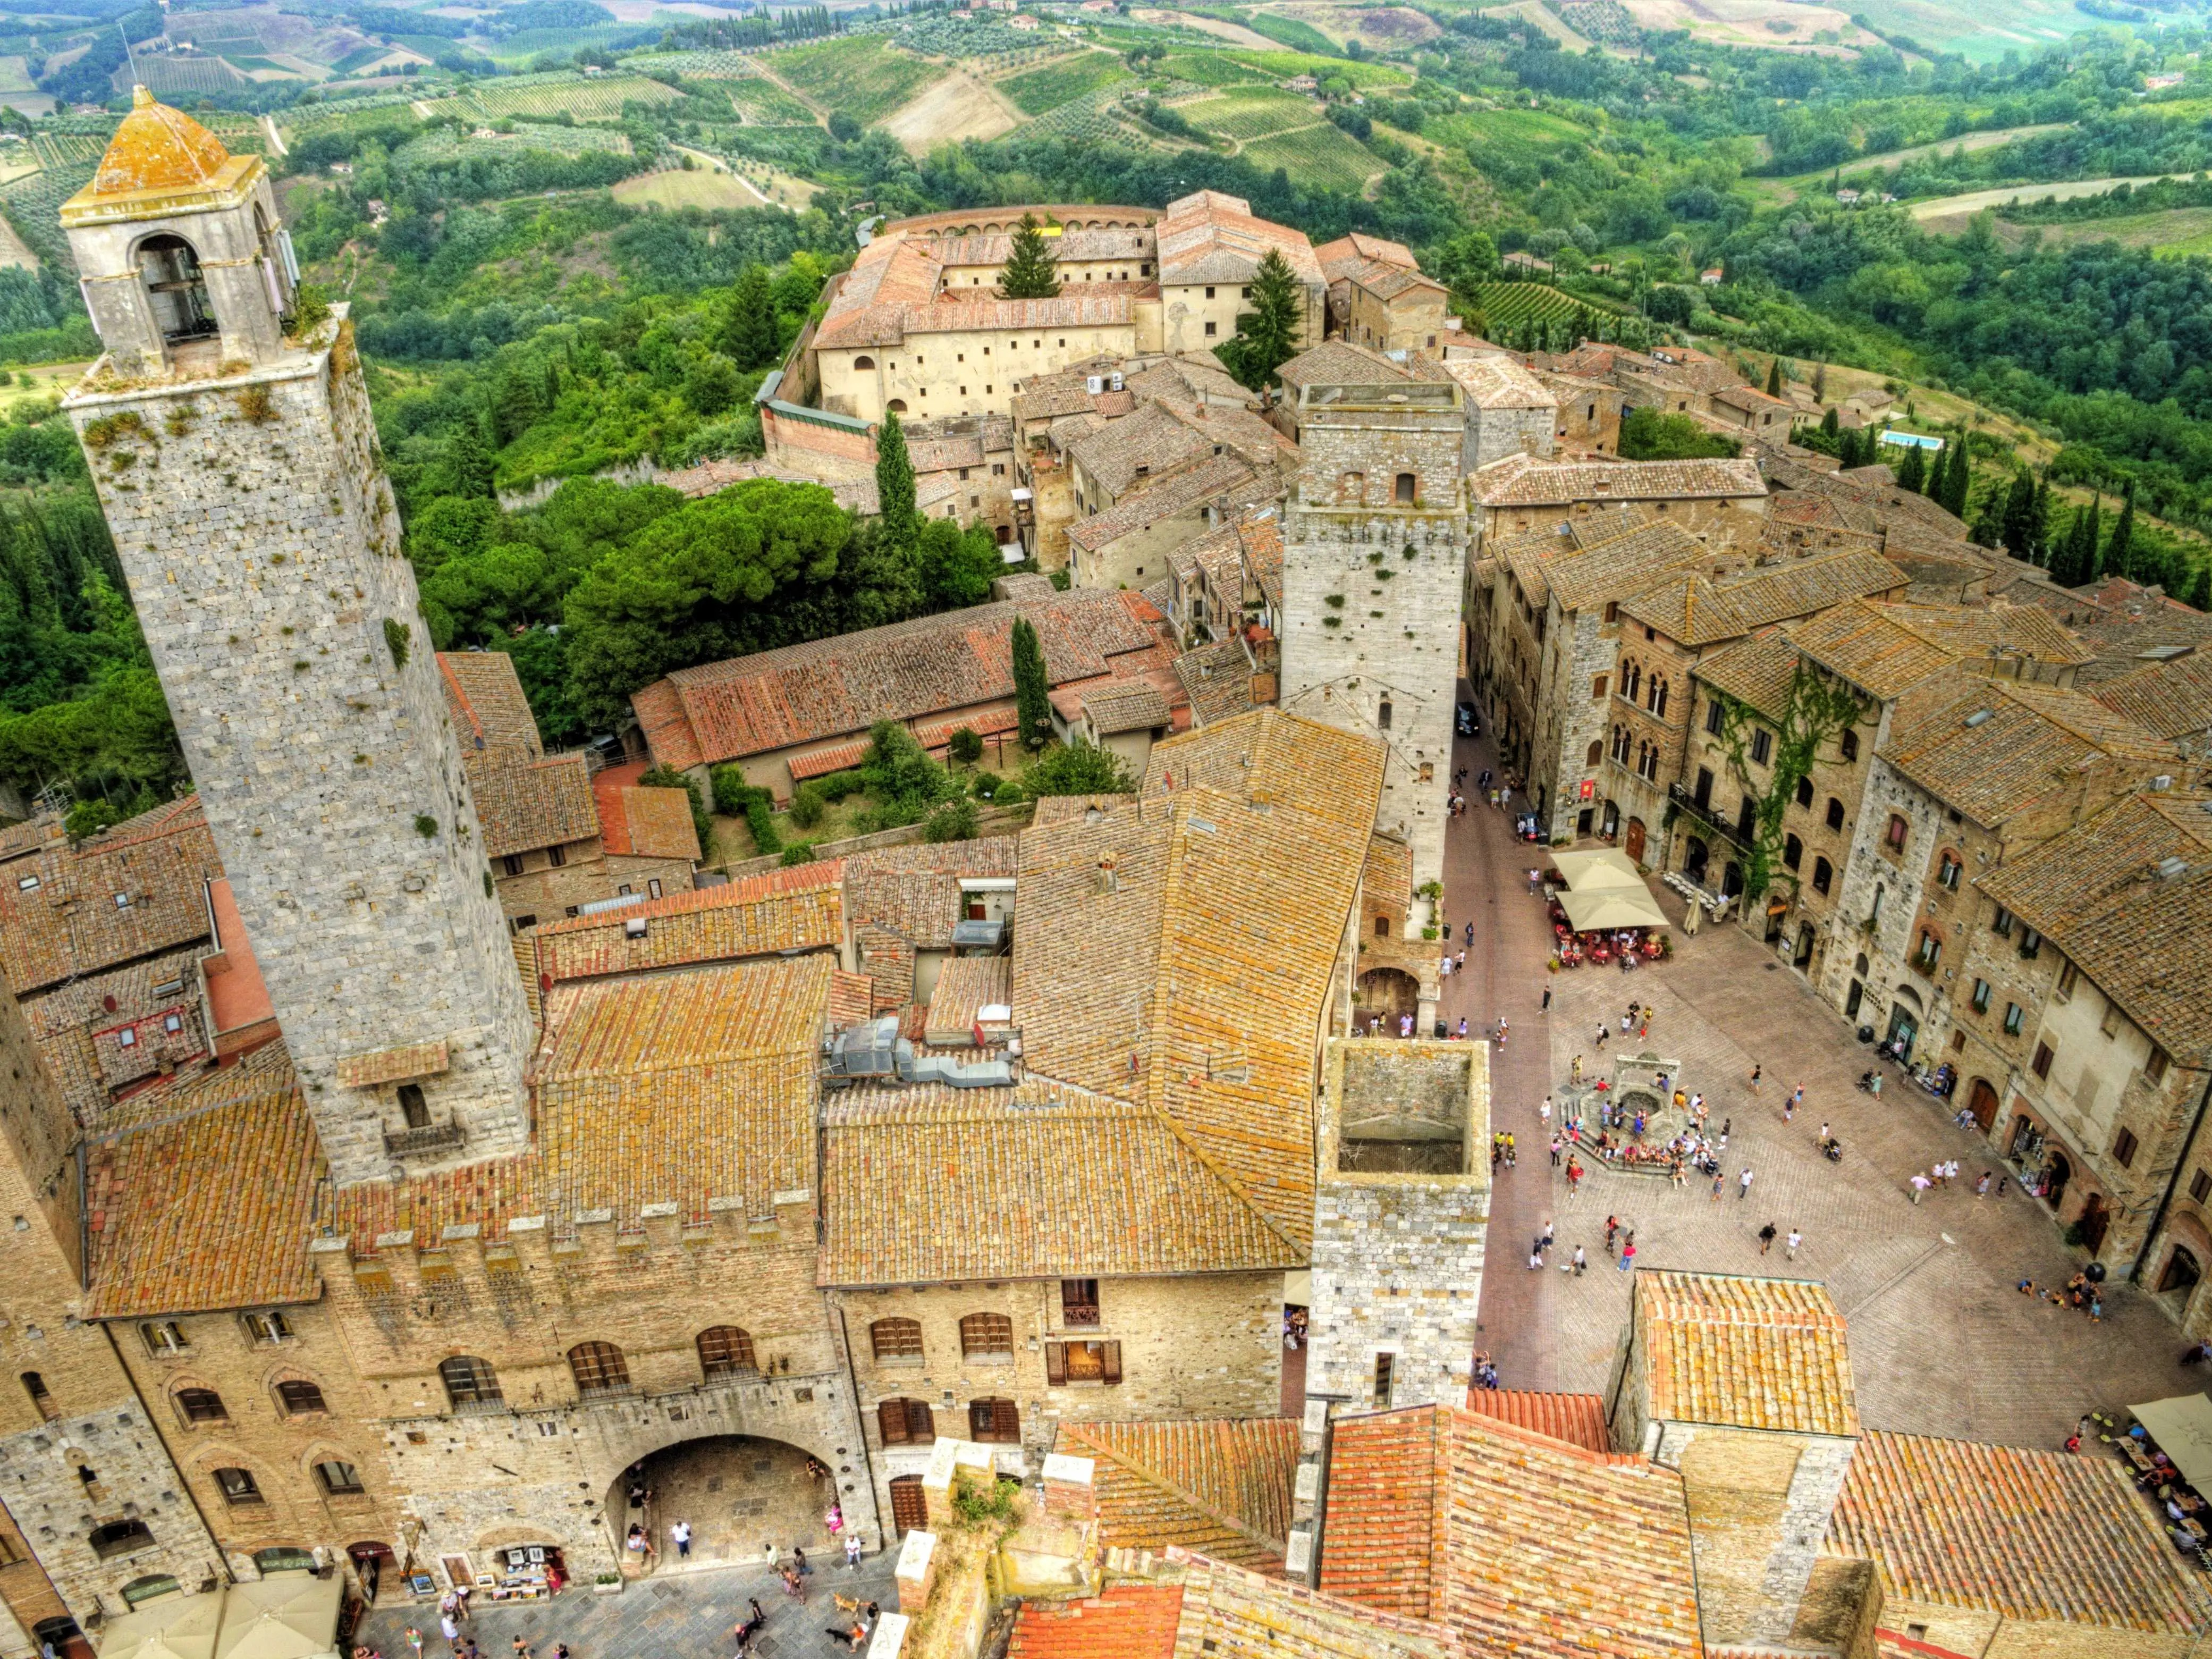 Explore the medieval city of San Gimignano, a walled city within Siena.